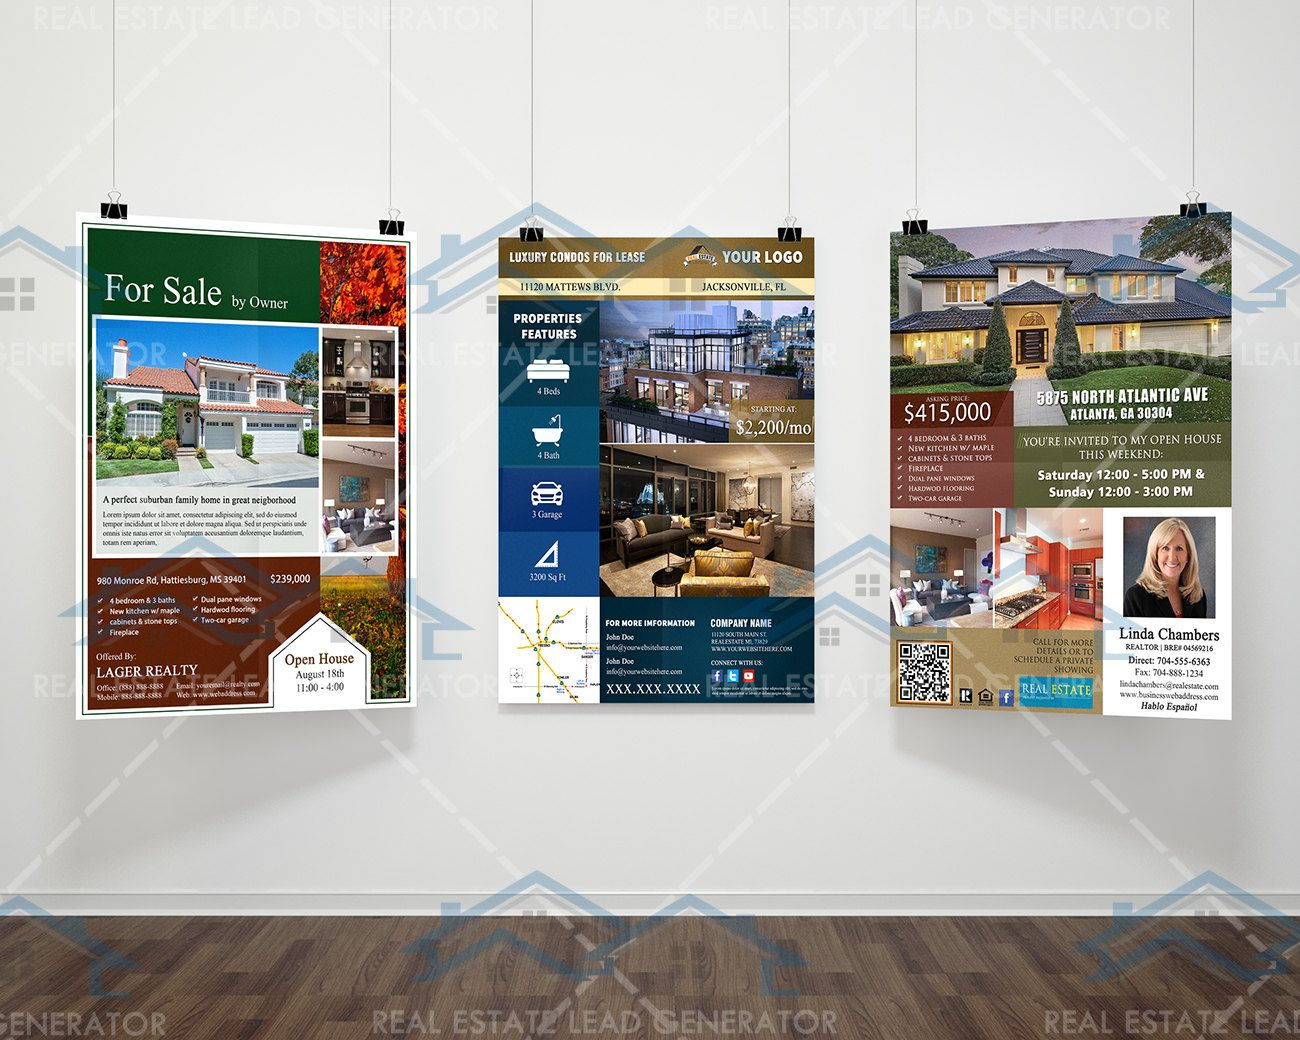 new listed realtor flyers real estate listing flyer custom 8 5x11 real estate marketing bundle 3 real estate listing flyers custom flyer designs